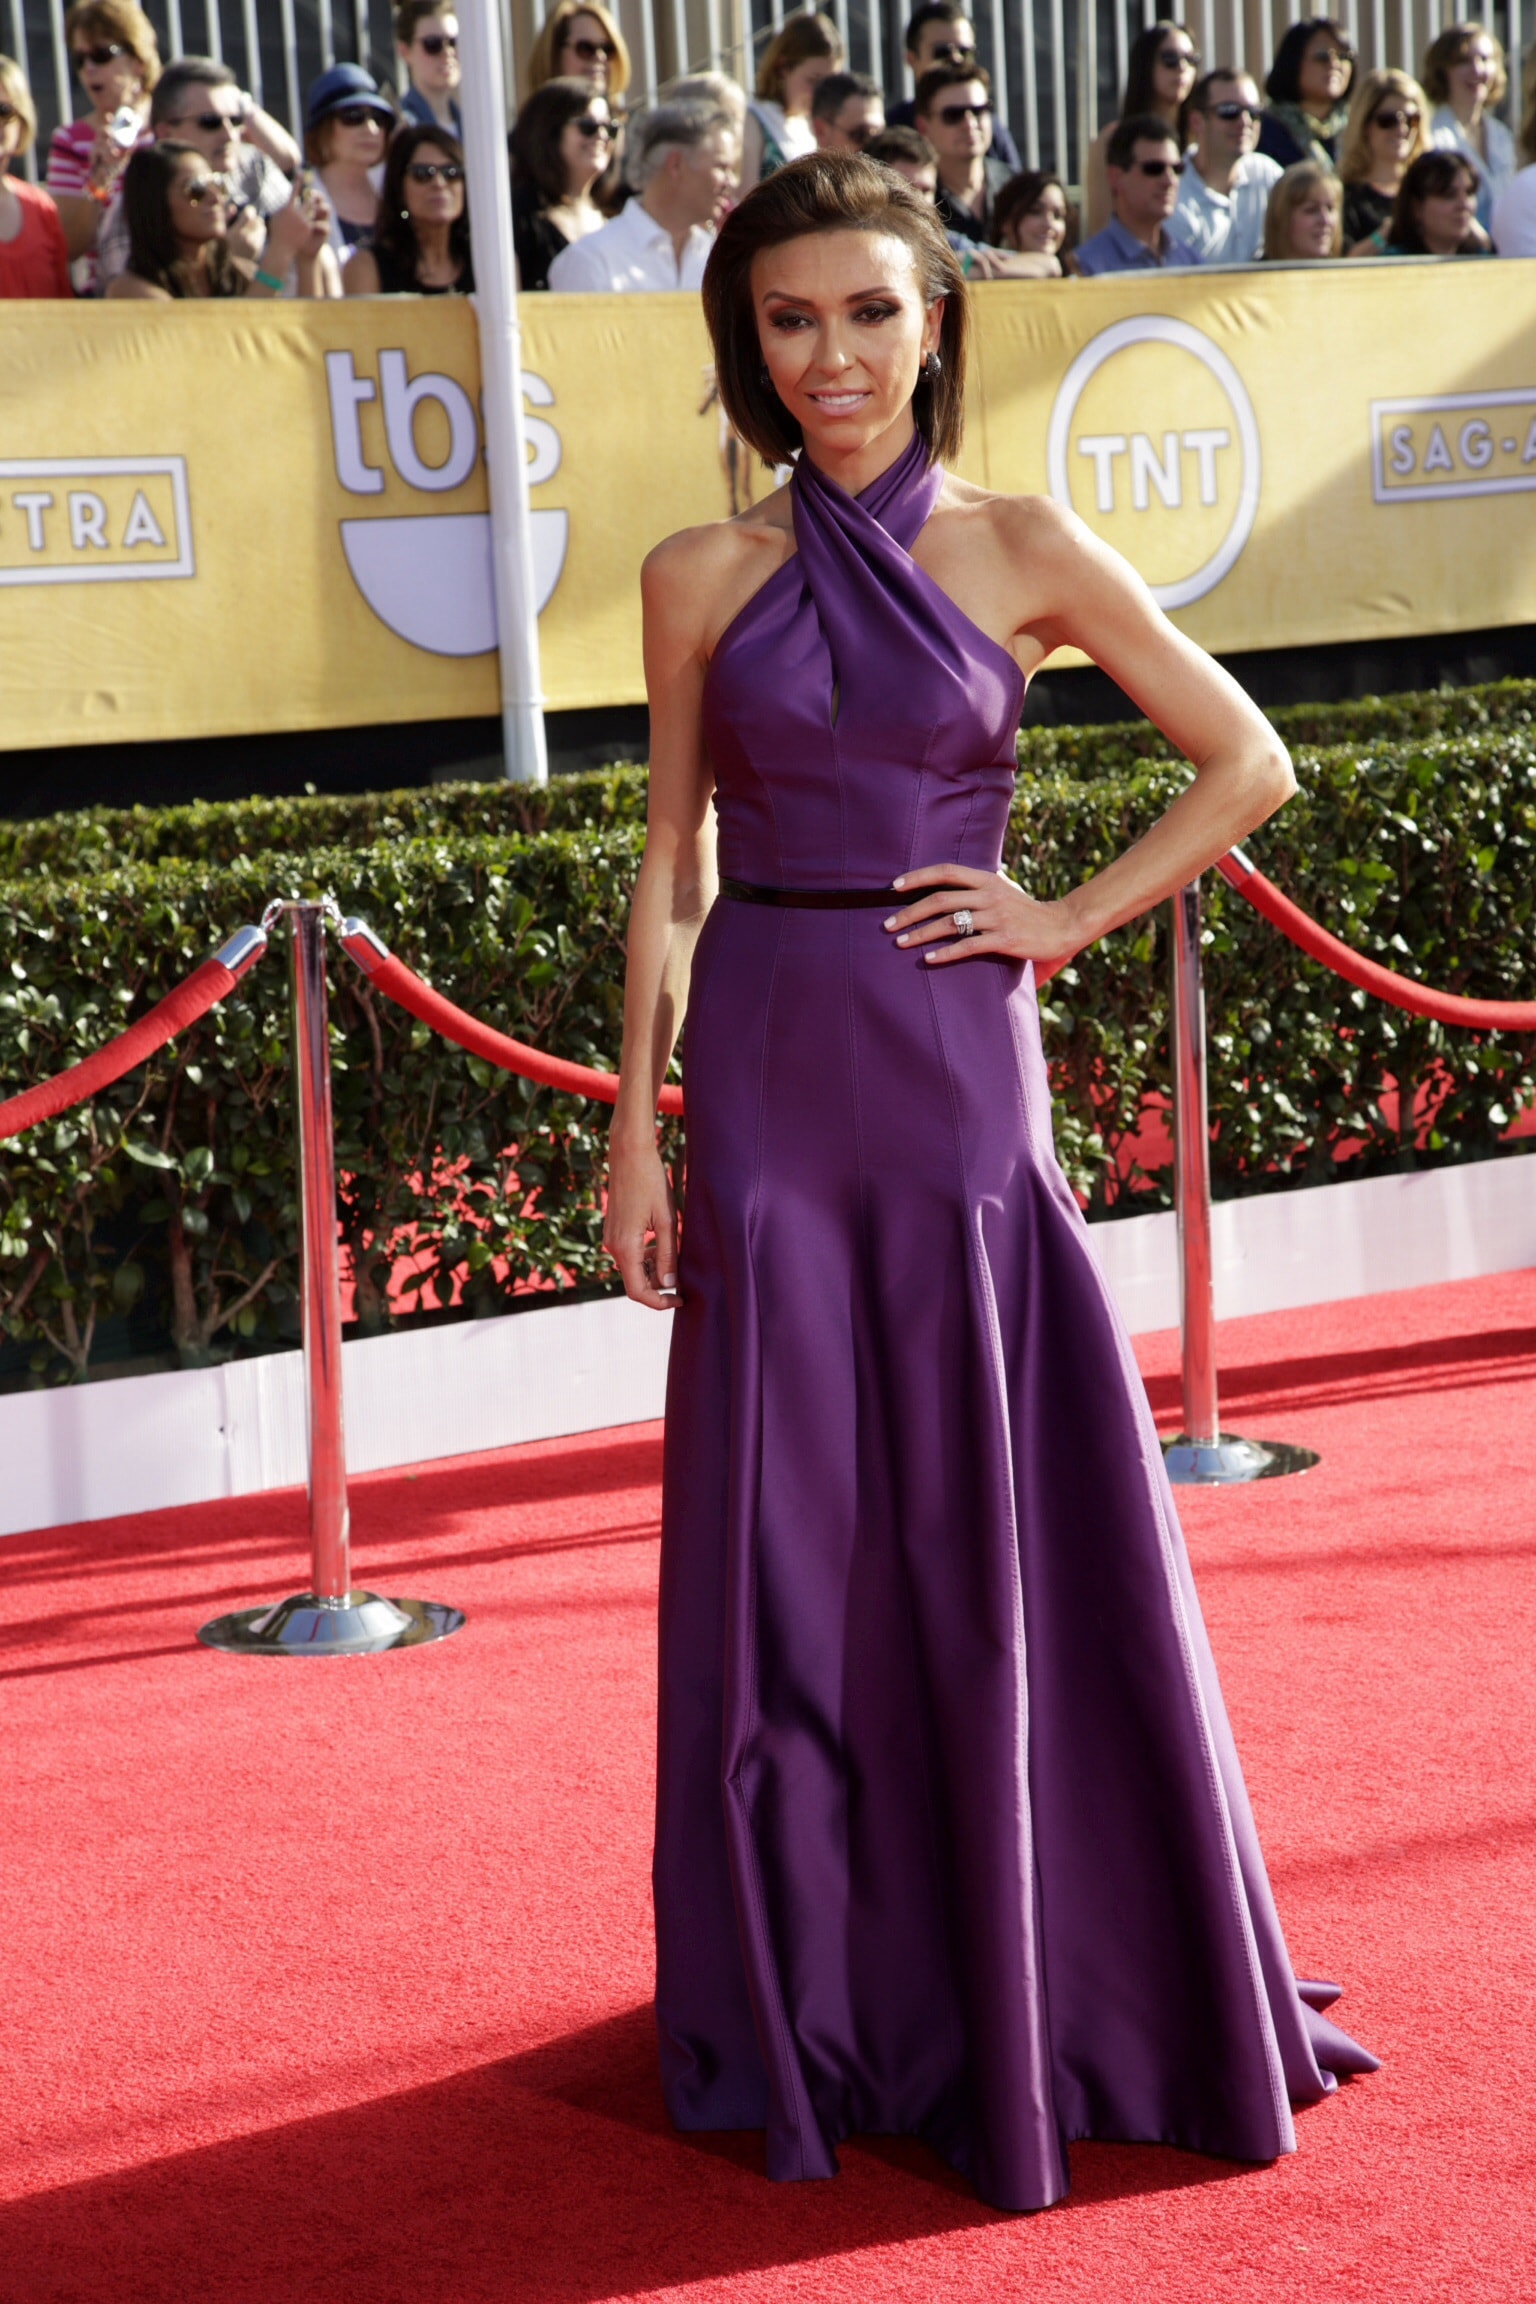 Celebrity Dresses by Jovani - Red Carpet Gowns - Page 2